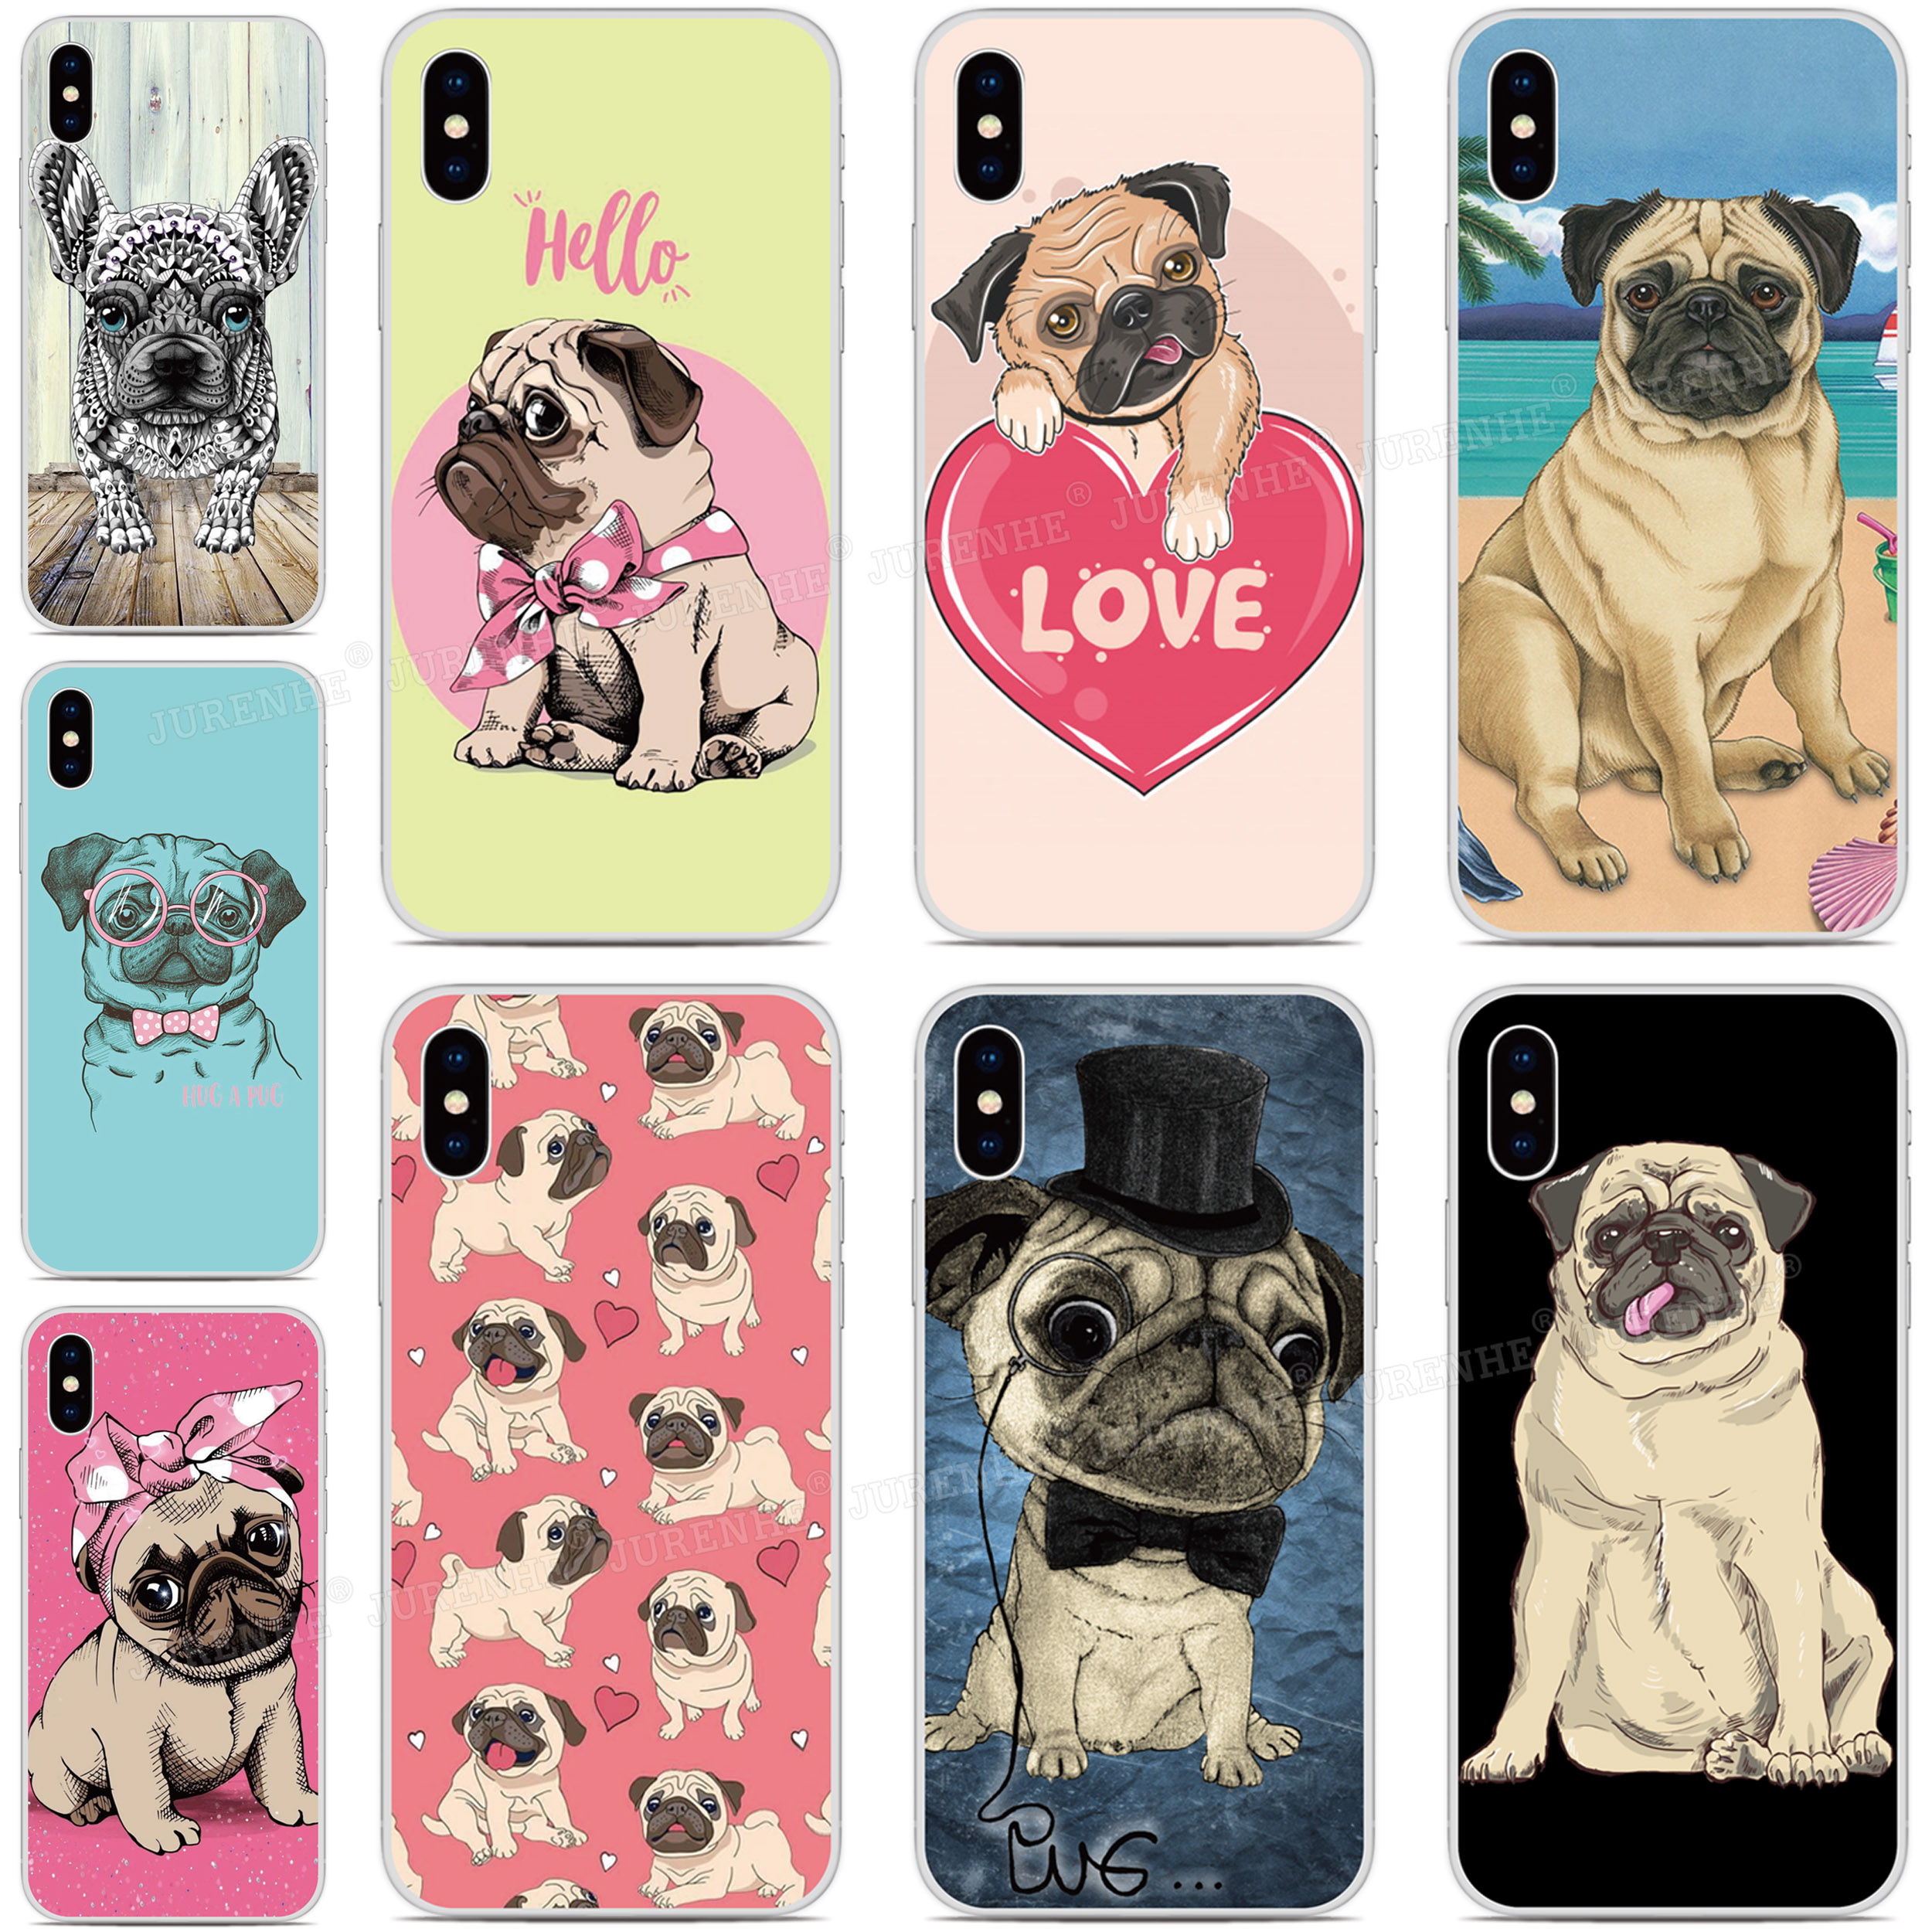 Silicone Custom Photo Funny Pug Puppy Dog Cover For Tp Link Neffos C9s C9 Max X20 Pro C5 Plus C9a C5a C7 Y7 C9 X9 N1 Phone Case Fitted Cases Aliexpress